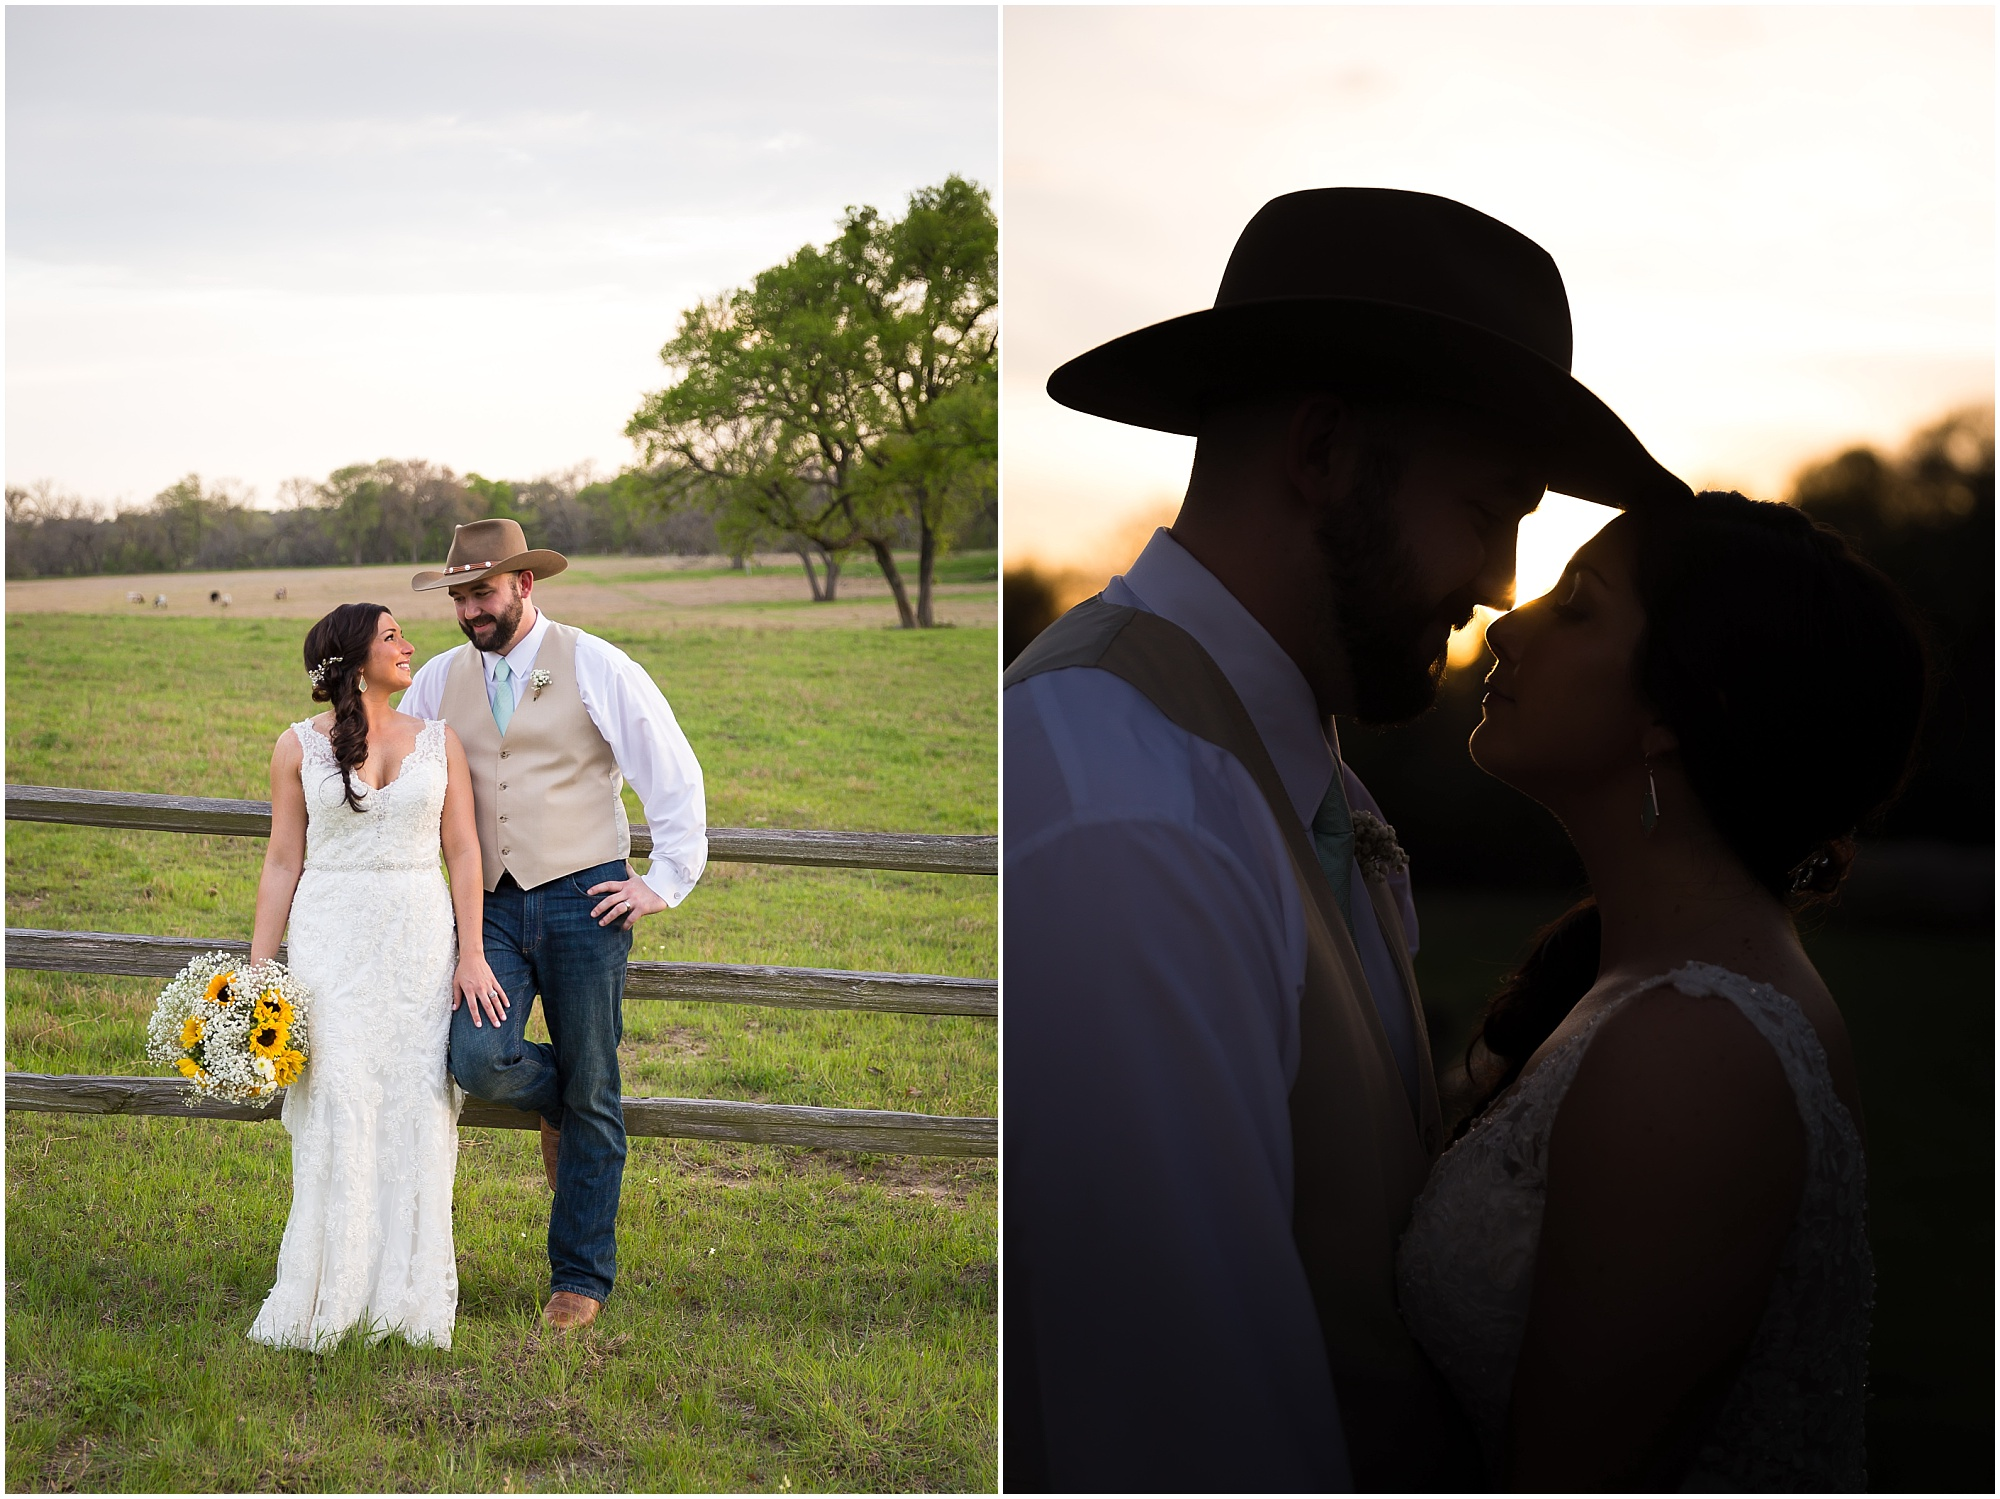 Sunset portraits with the bride and groom - Reception at Peacock River Ranch in Gatesville, Texas - Jason & Melaina Photography